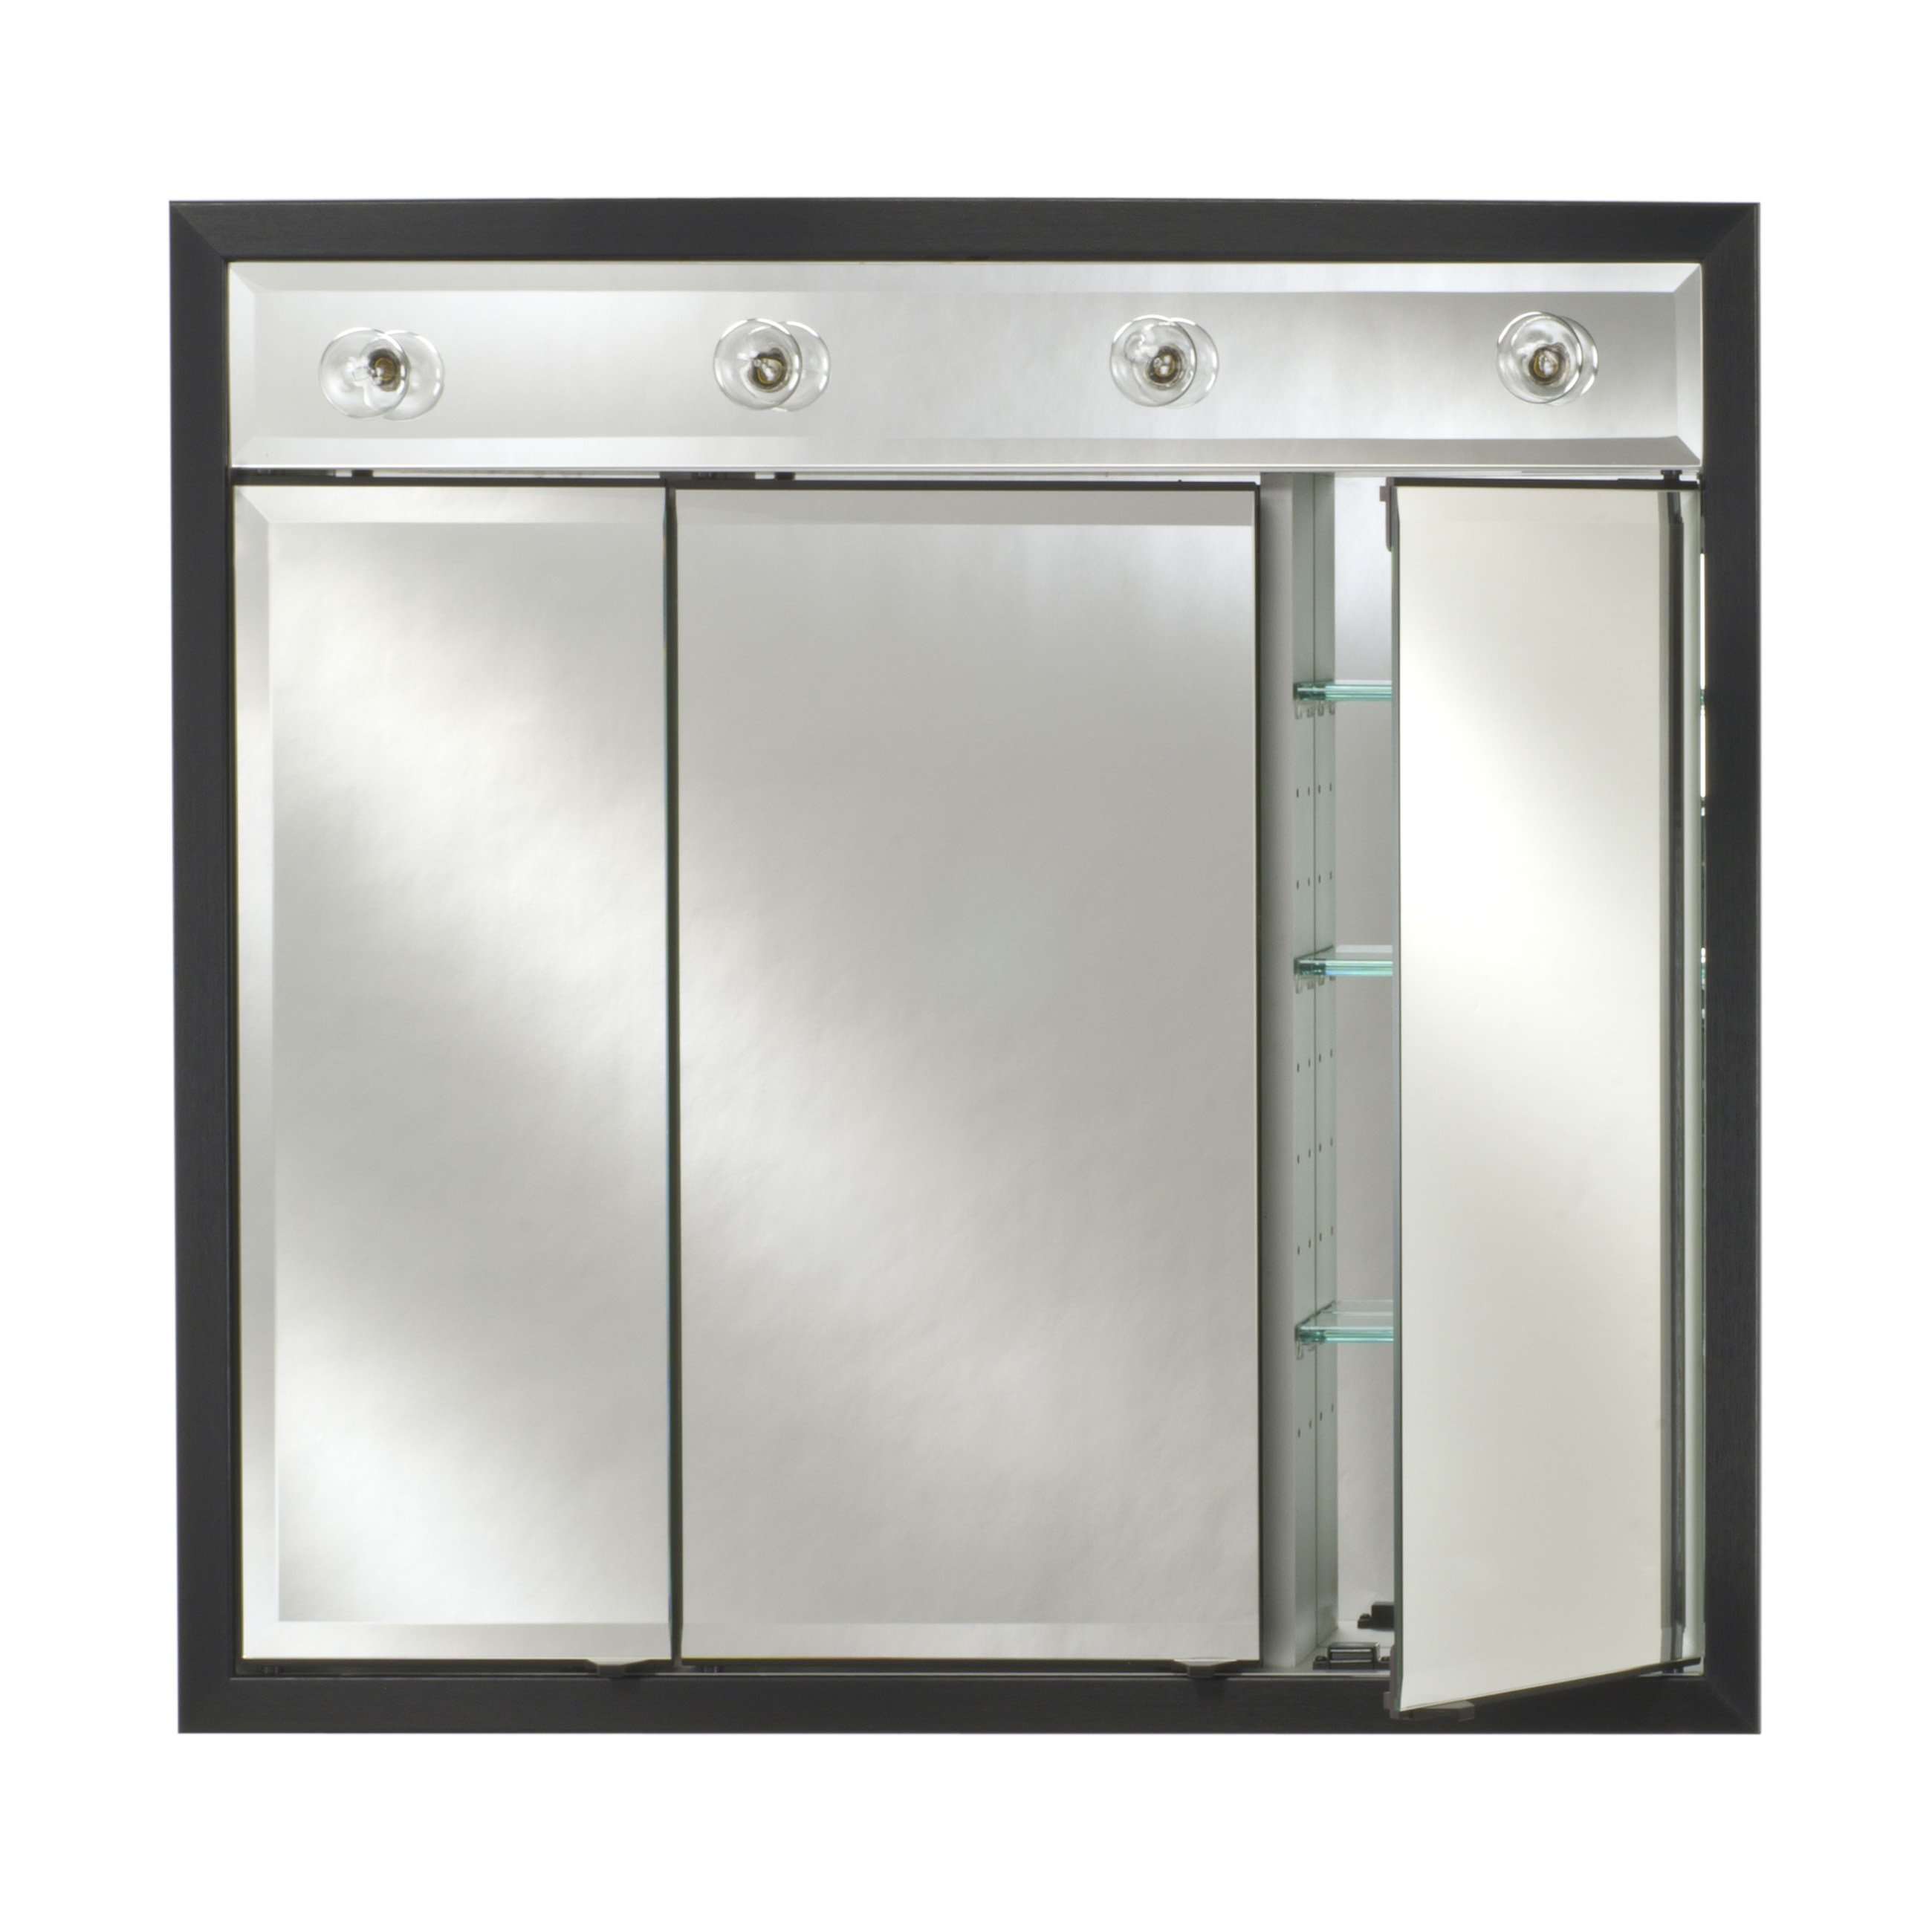 Afina Signature Contemporary Lighted Triple Door 47W x 40H in. Surface Mount Medicine Cabinet